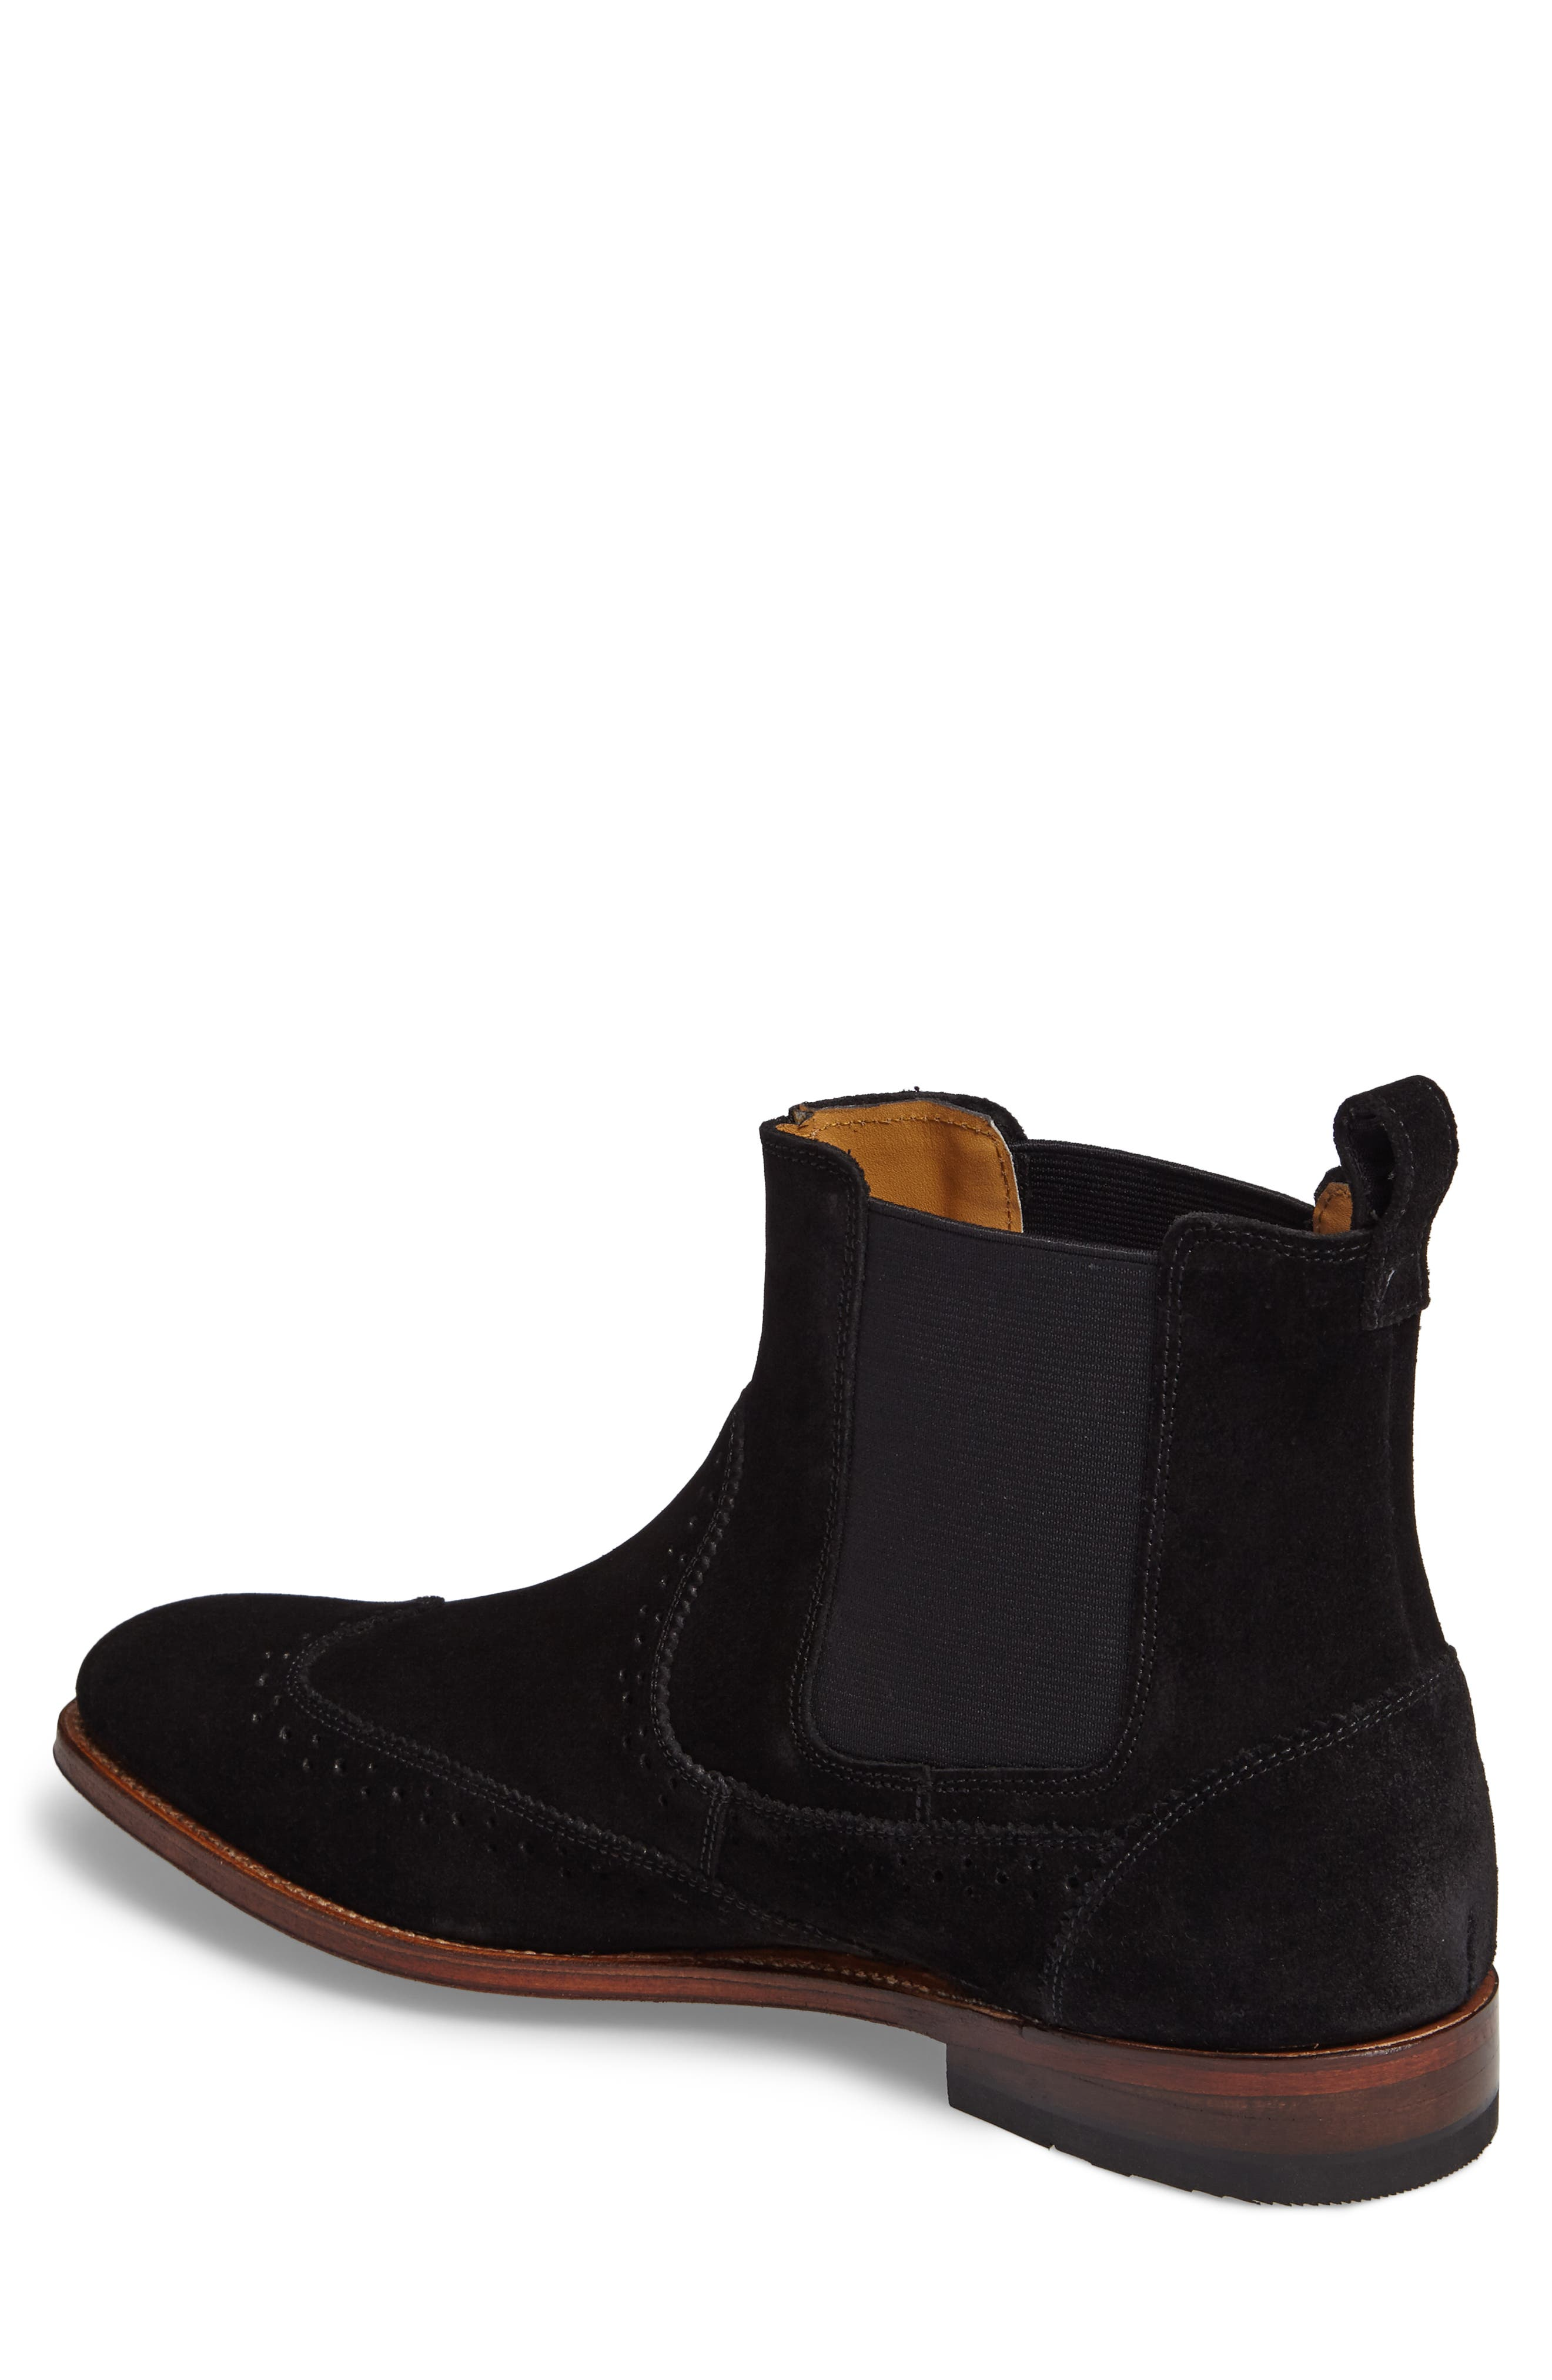 Madison II Wingtip Chelsea Boot,                             Alternate thumbnail 2, color,                             BLACK SUEDE